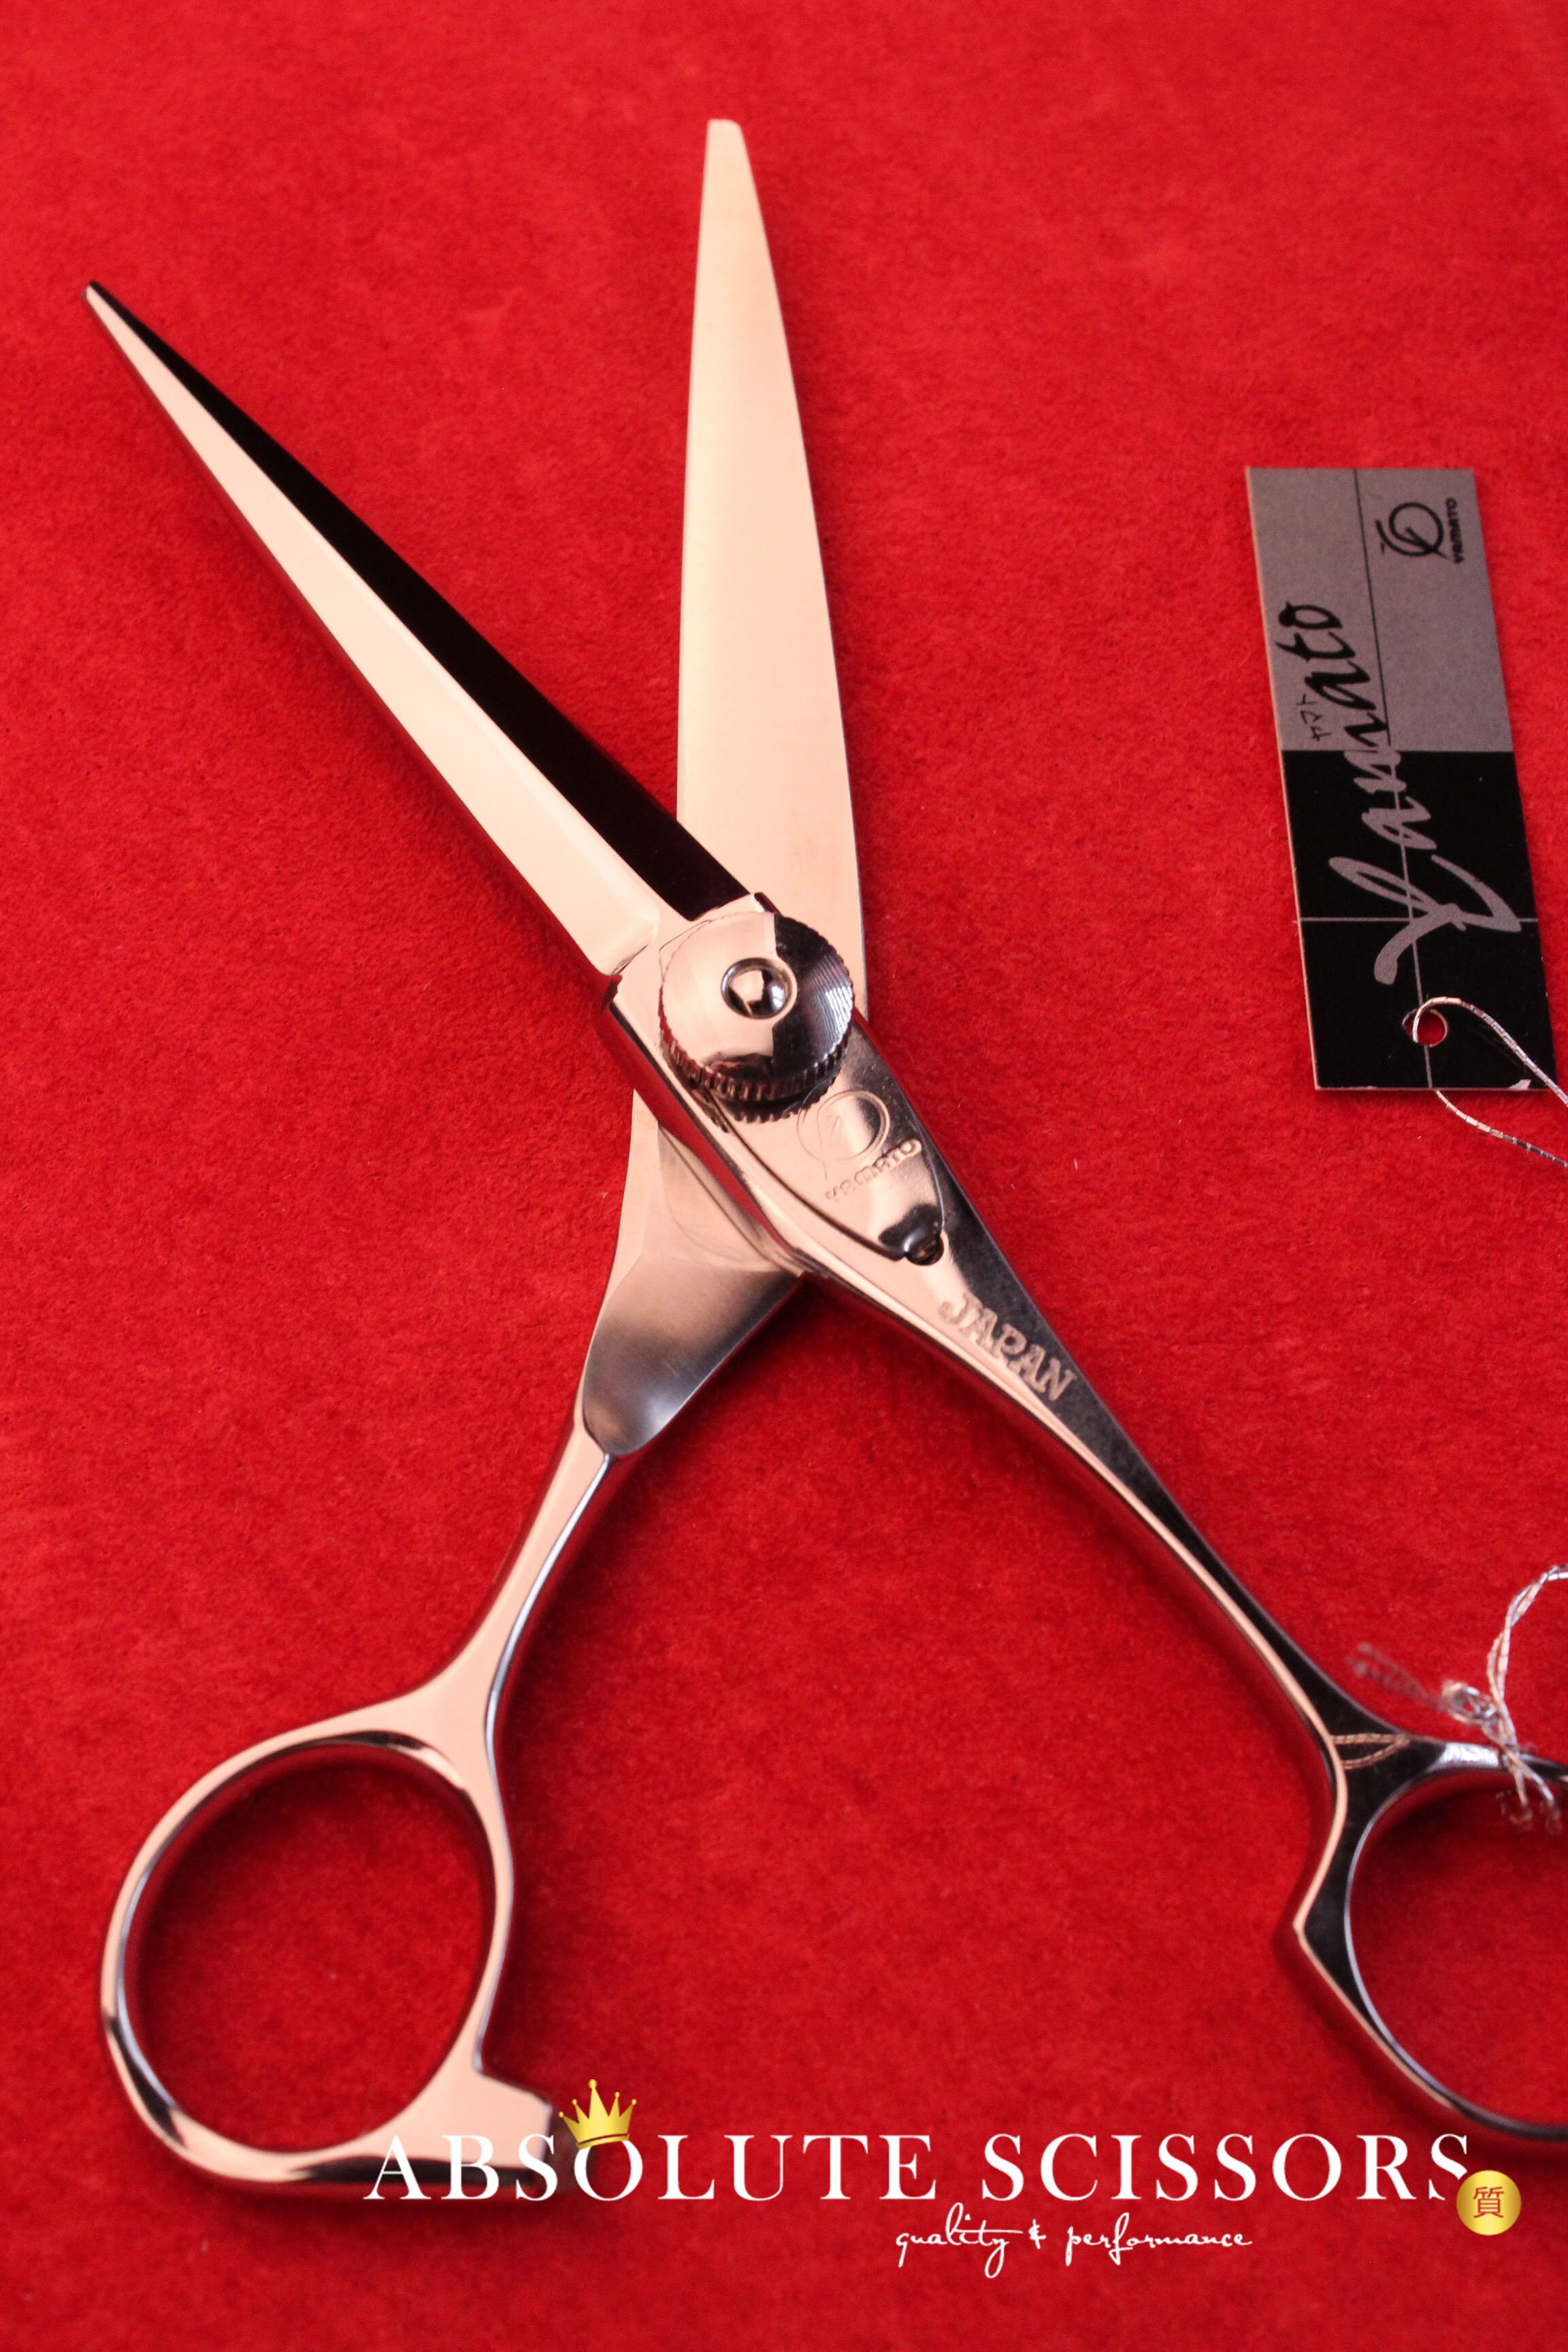 Royal-W55-3736-Yamato-hair-shears-size-5.5-inches